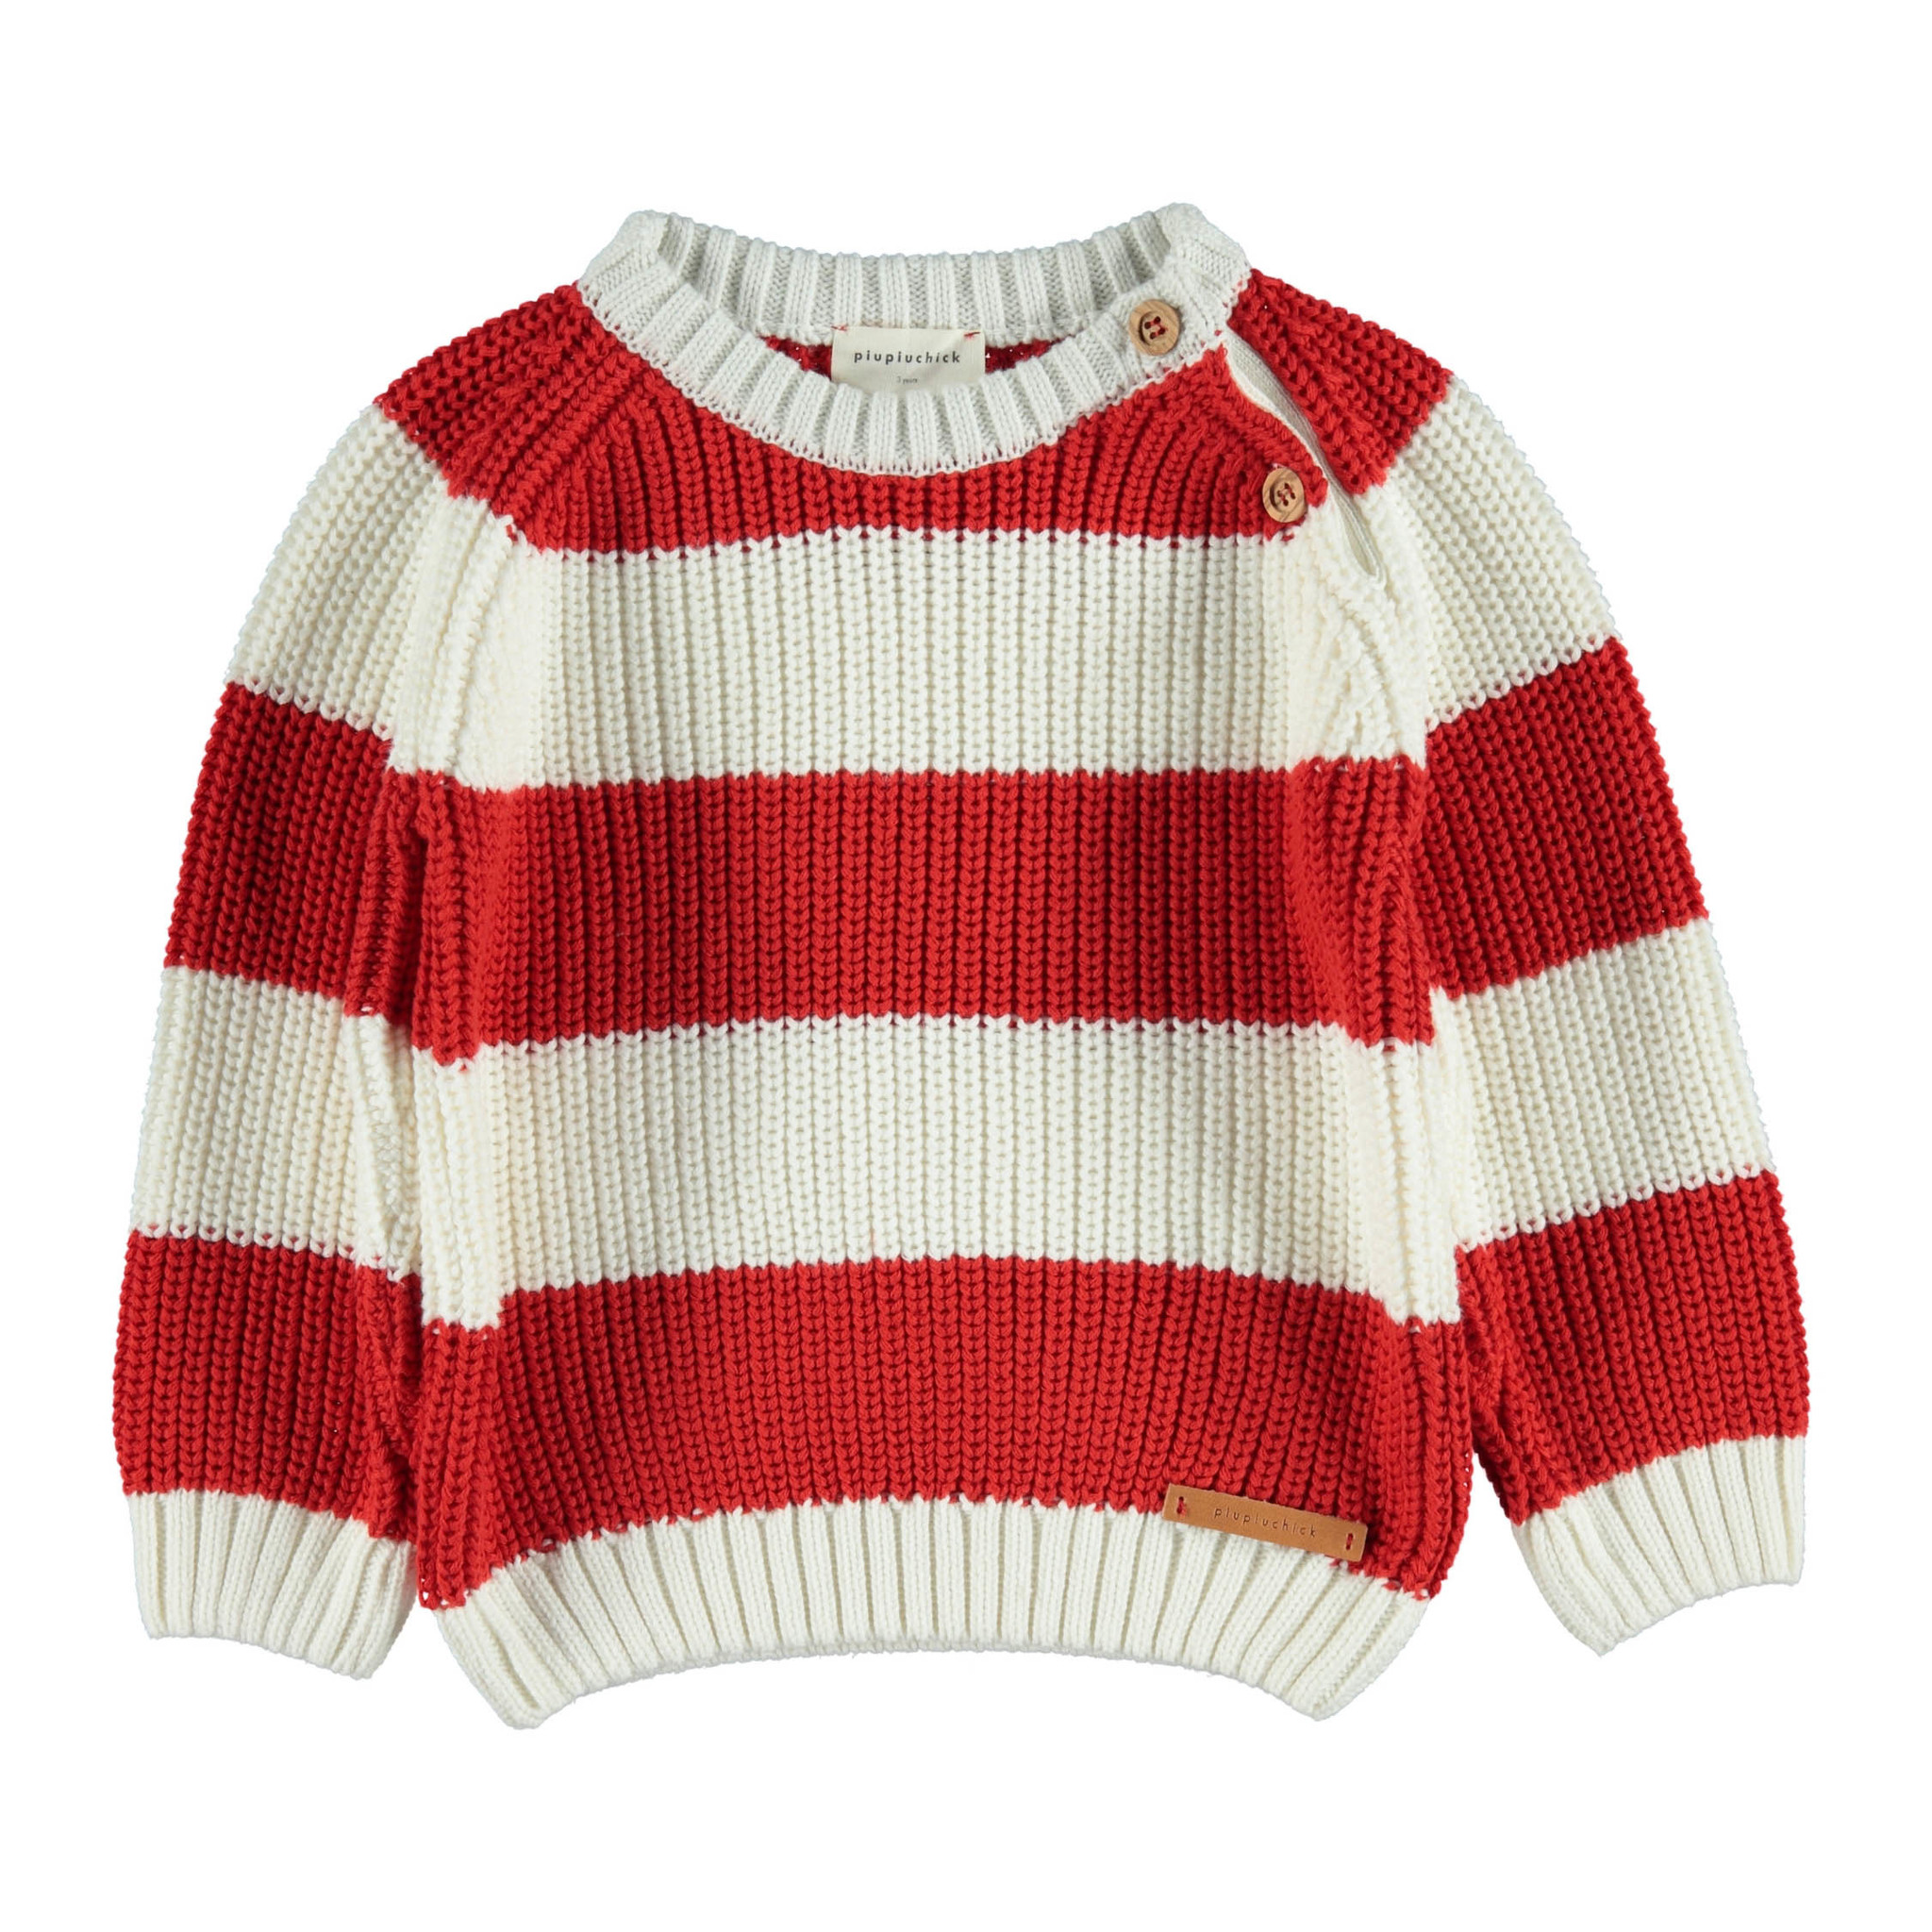 piupiuchick Knitted sweater | red & white stripes